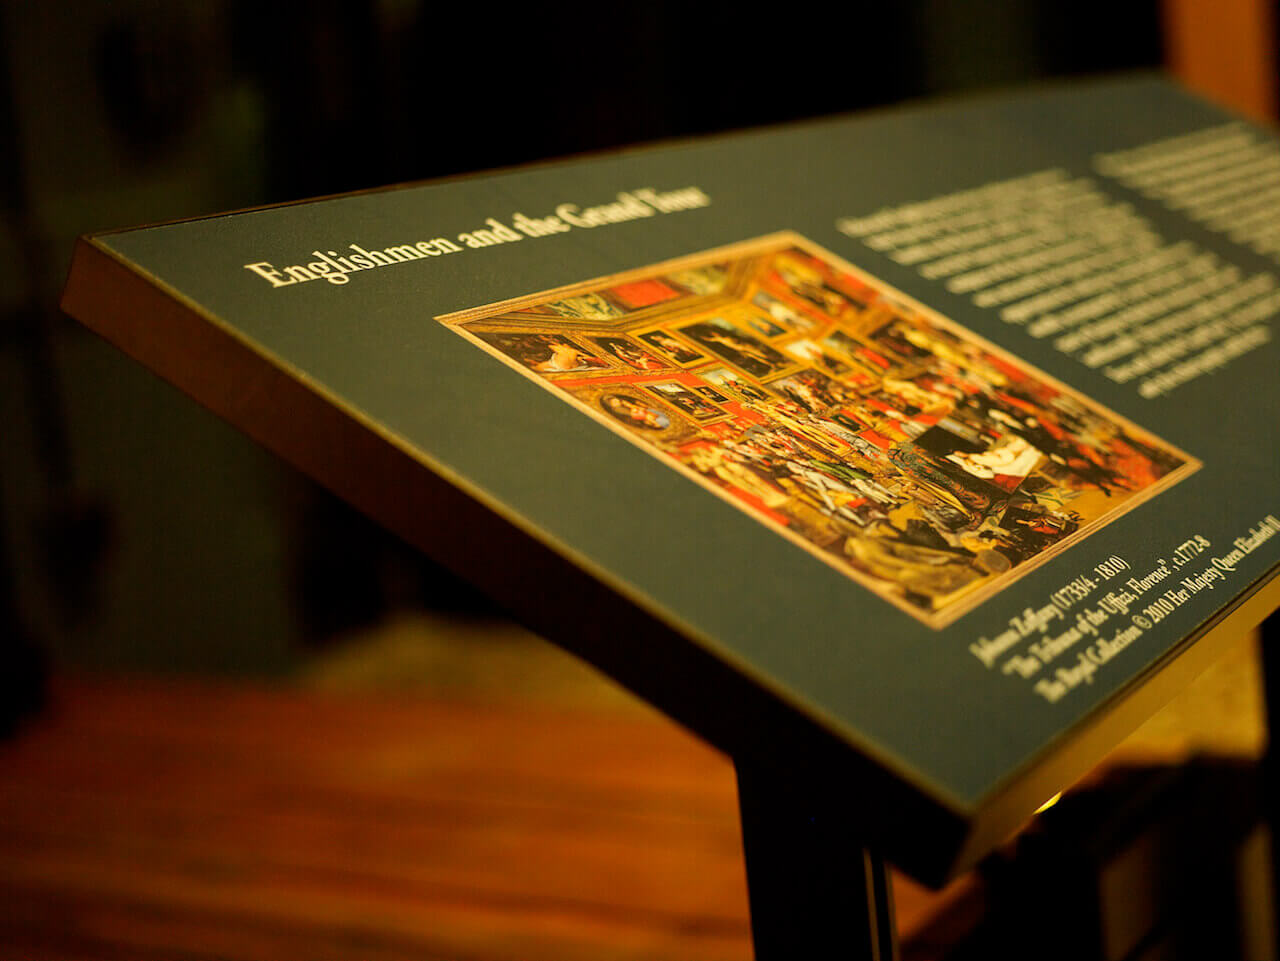 A close up image of a lecturn with exhibit images and description